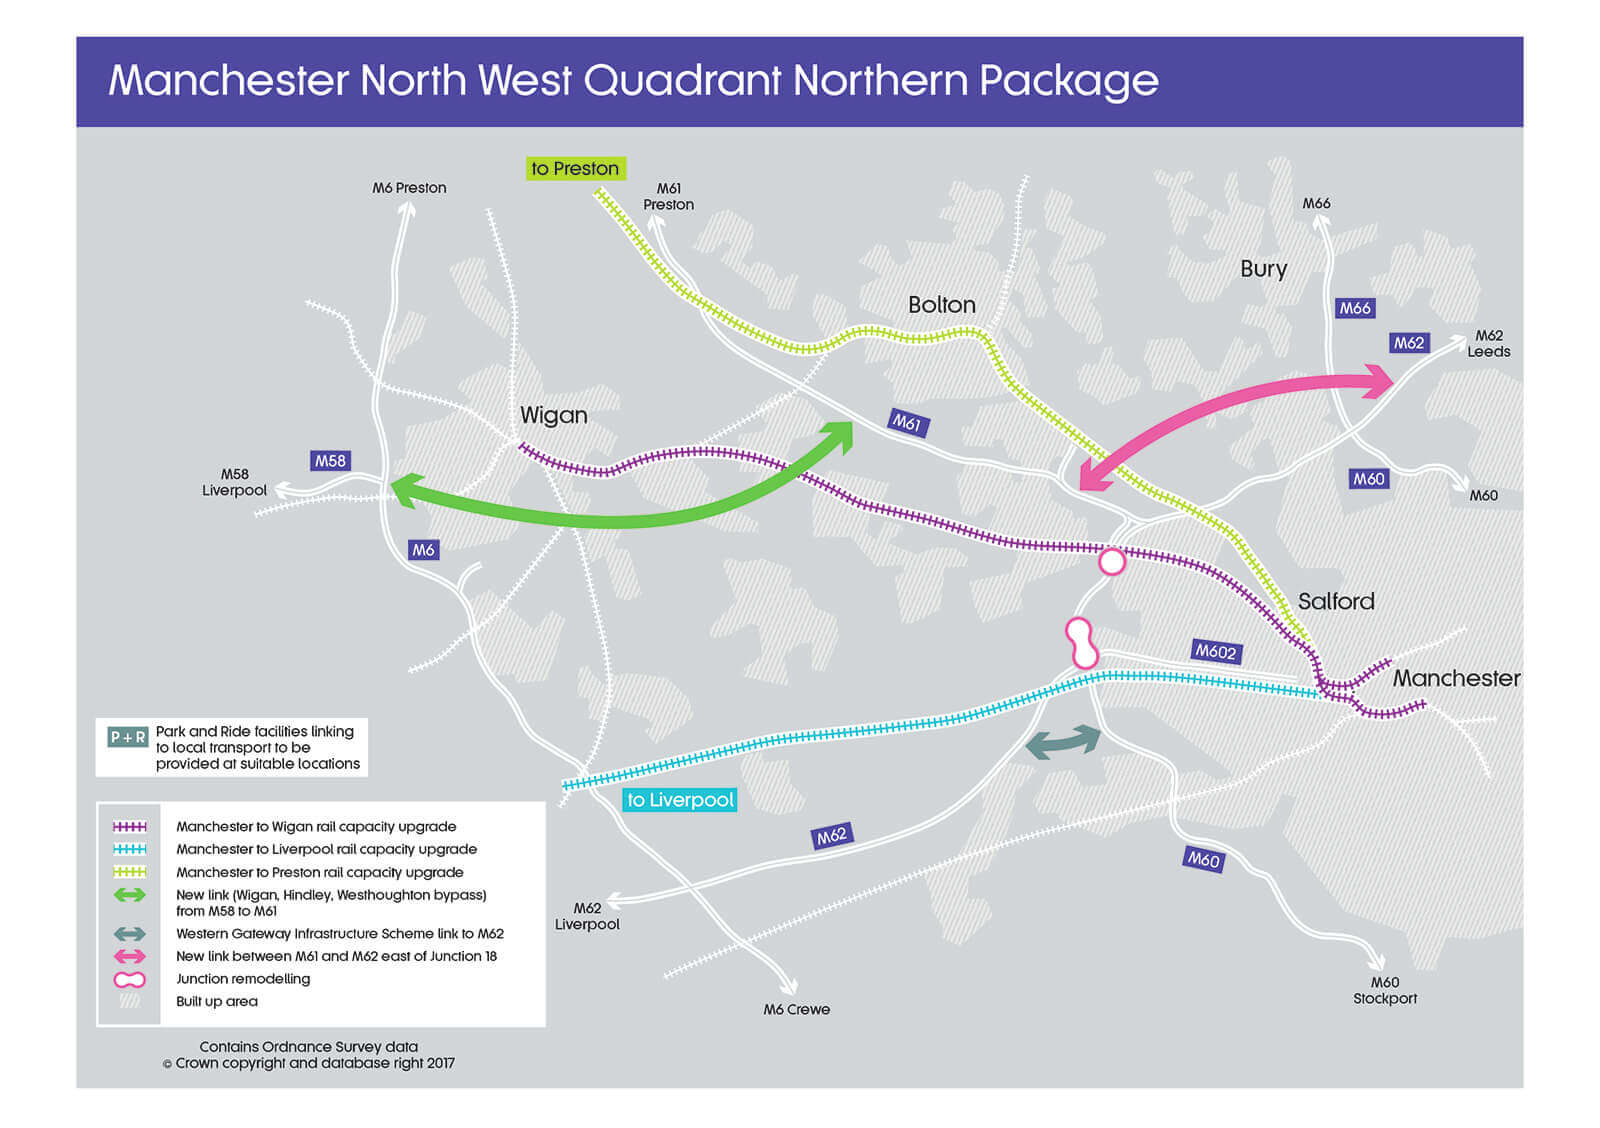 Manchester North West Quadrant Northern Package